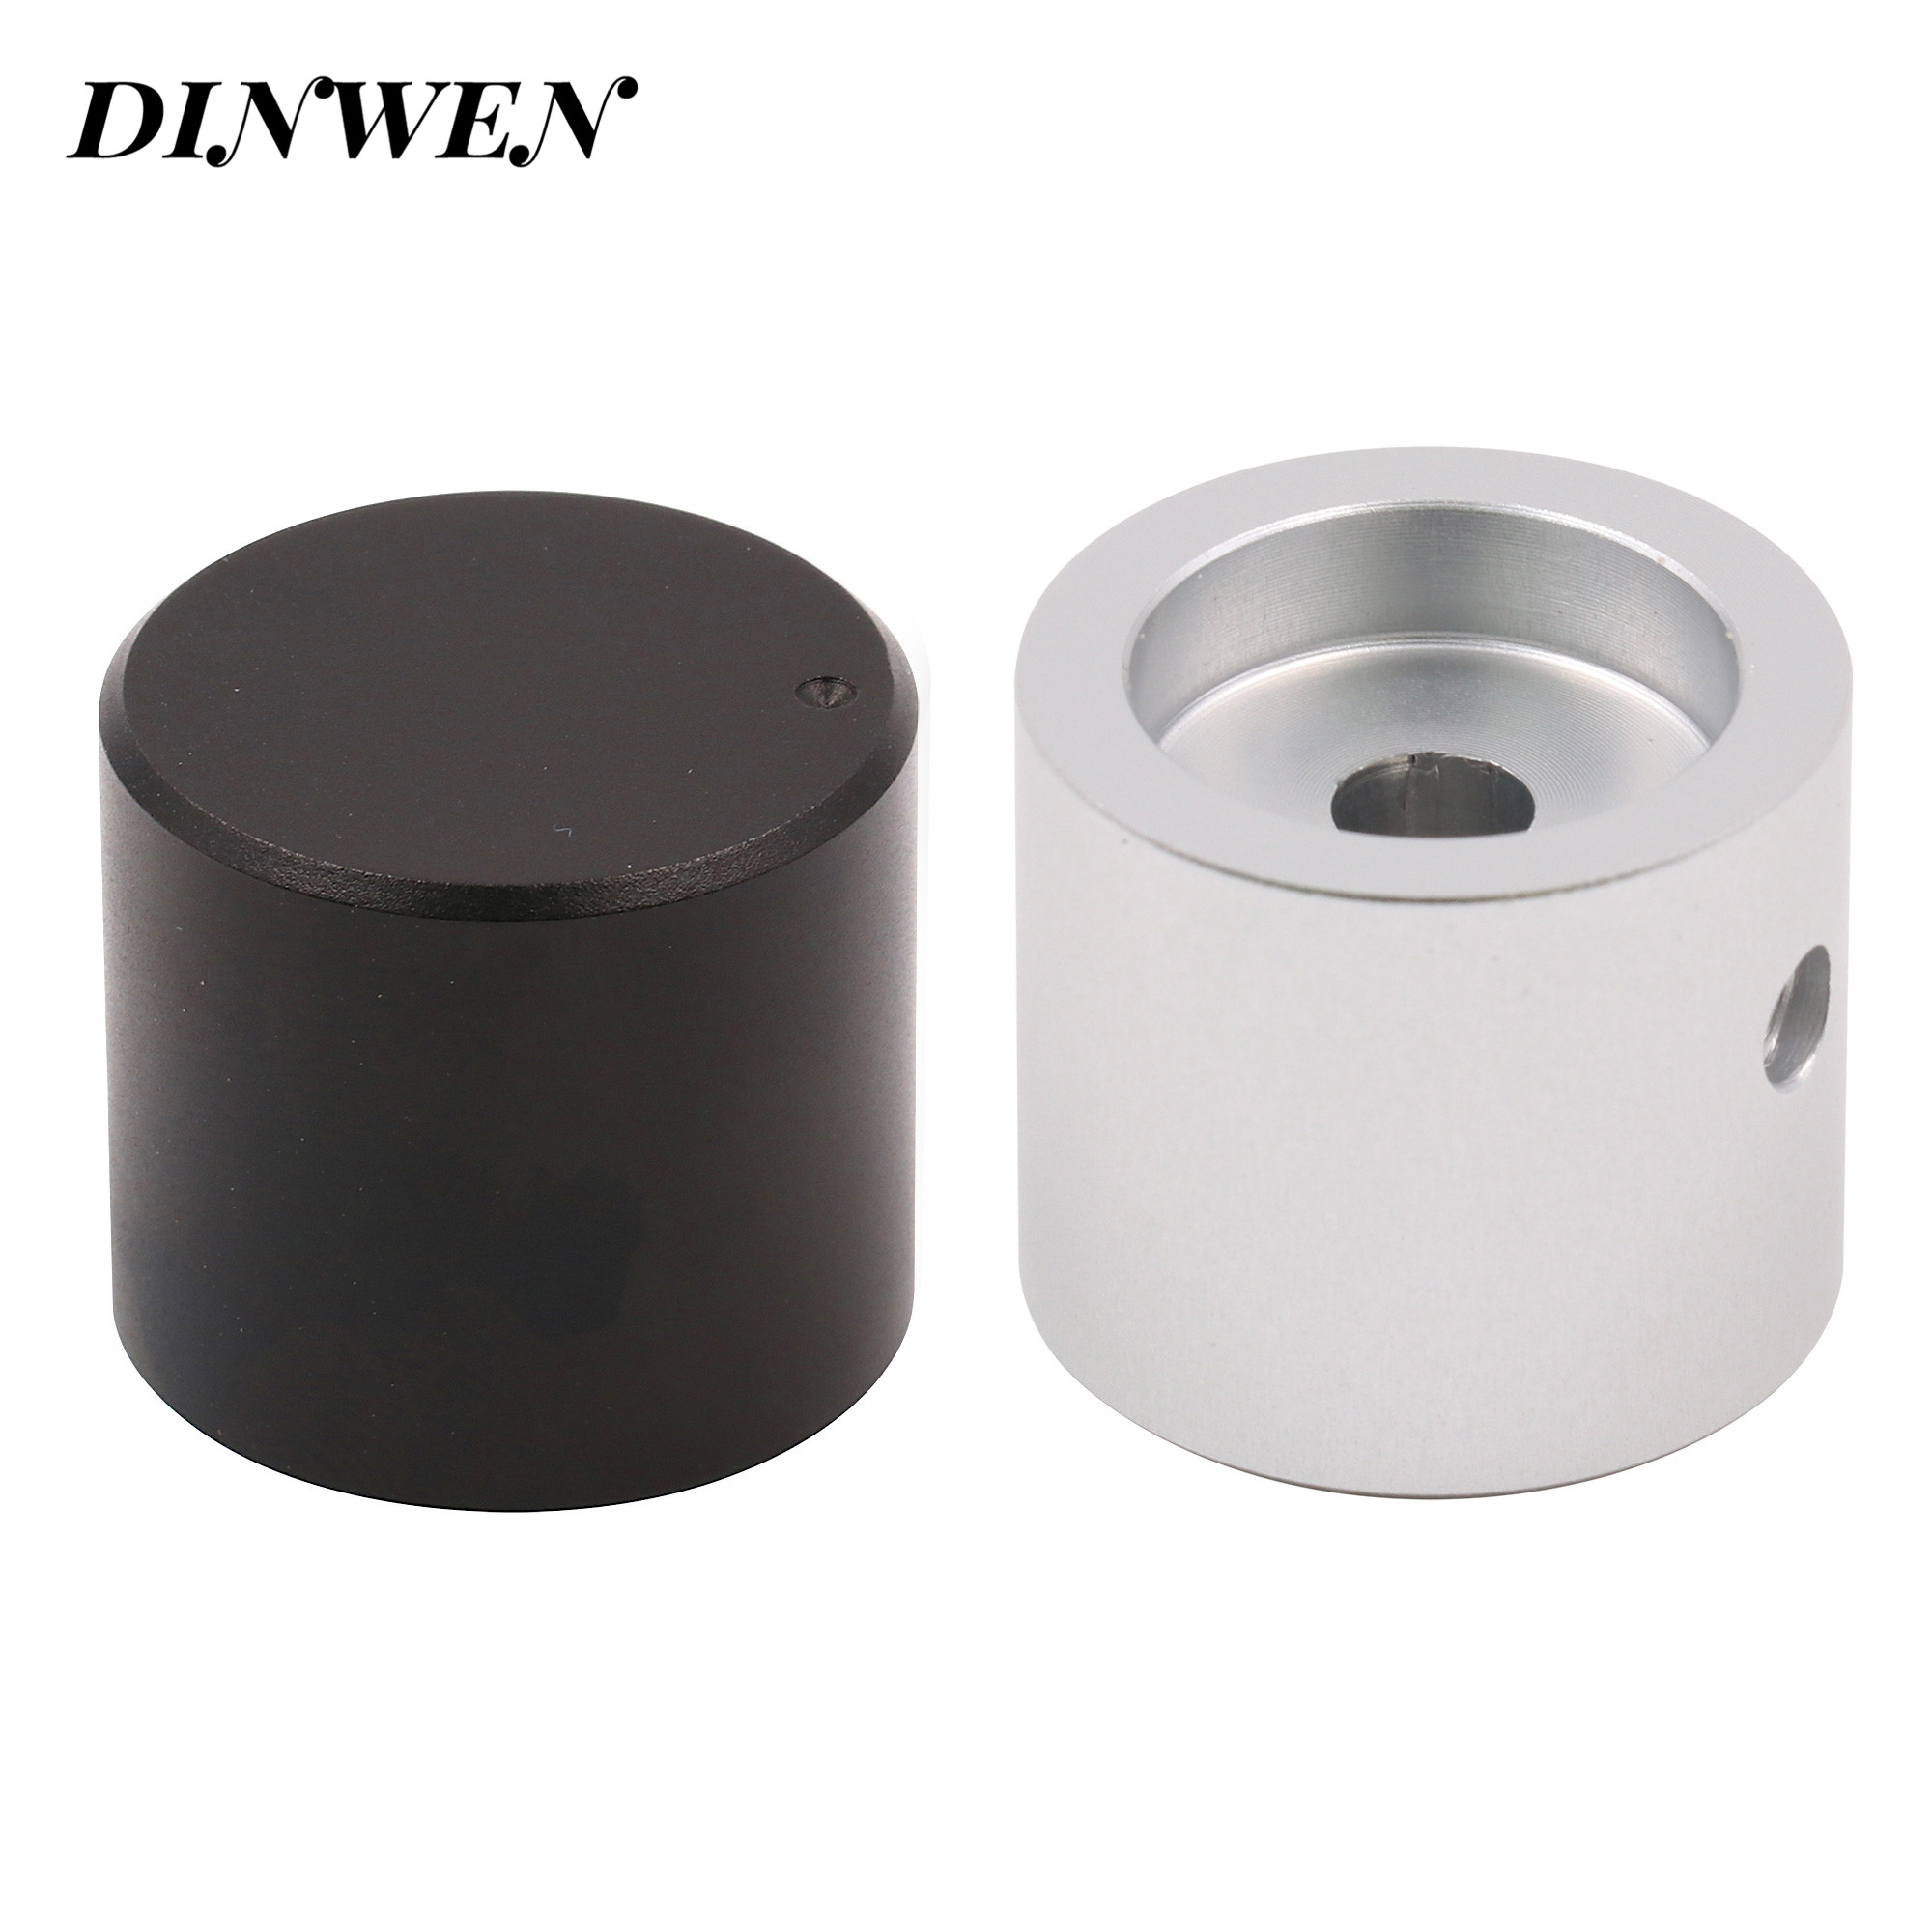 25*22mm Machined Solid Aluminum Volume Potentiometer knob HIFI Car Audio Tube Headphone AMP Sound Control Cap Button